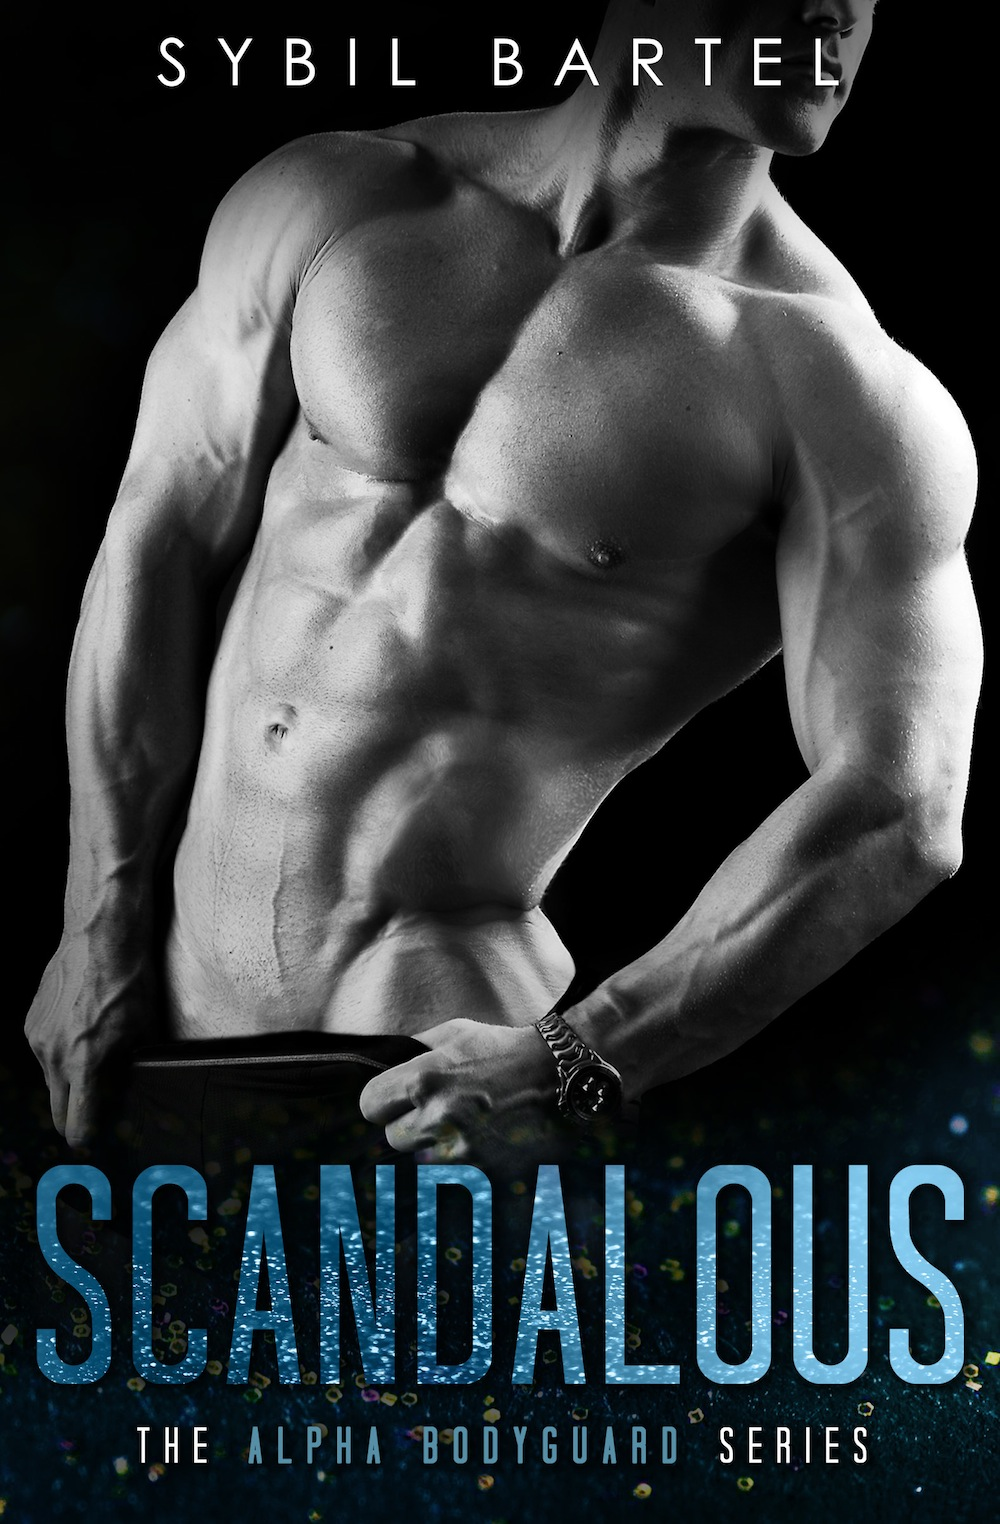 Scandalous (Alpha Bodyguard #1) by Sybil Bartel